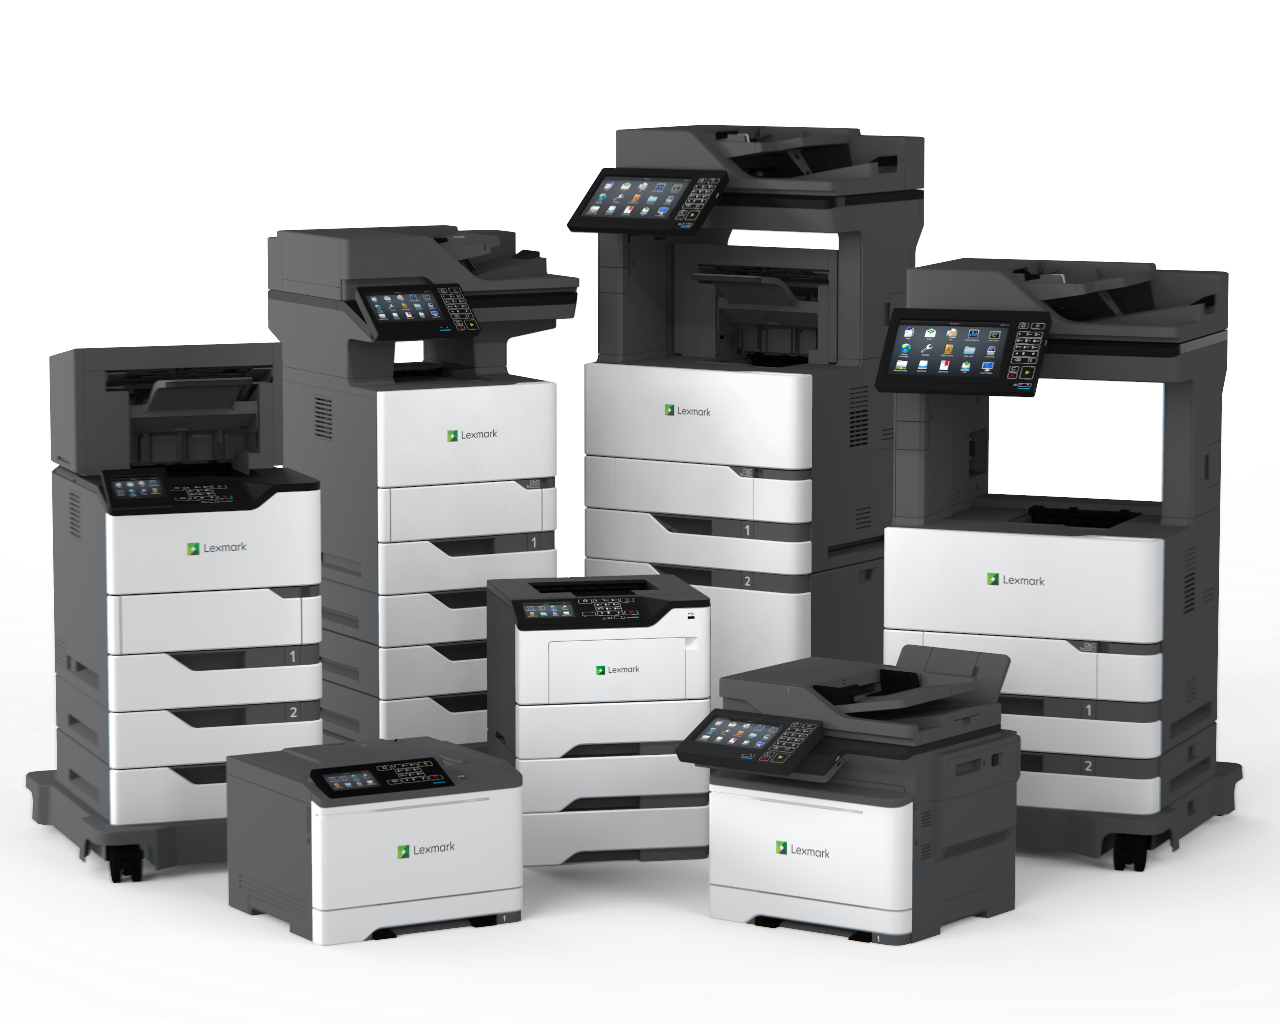 New colour printers with the BLI buyers lab 2015 pick badge